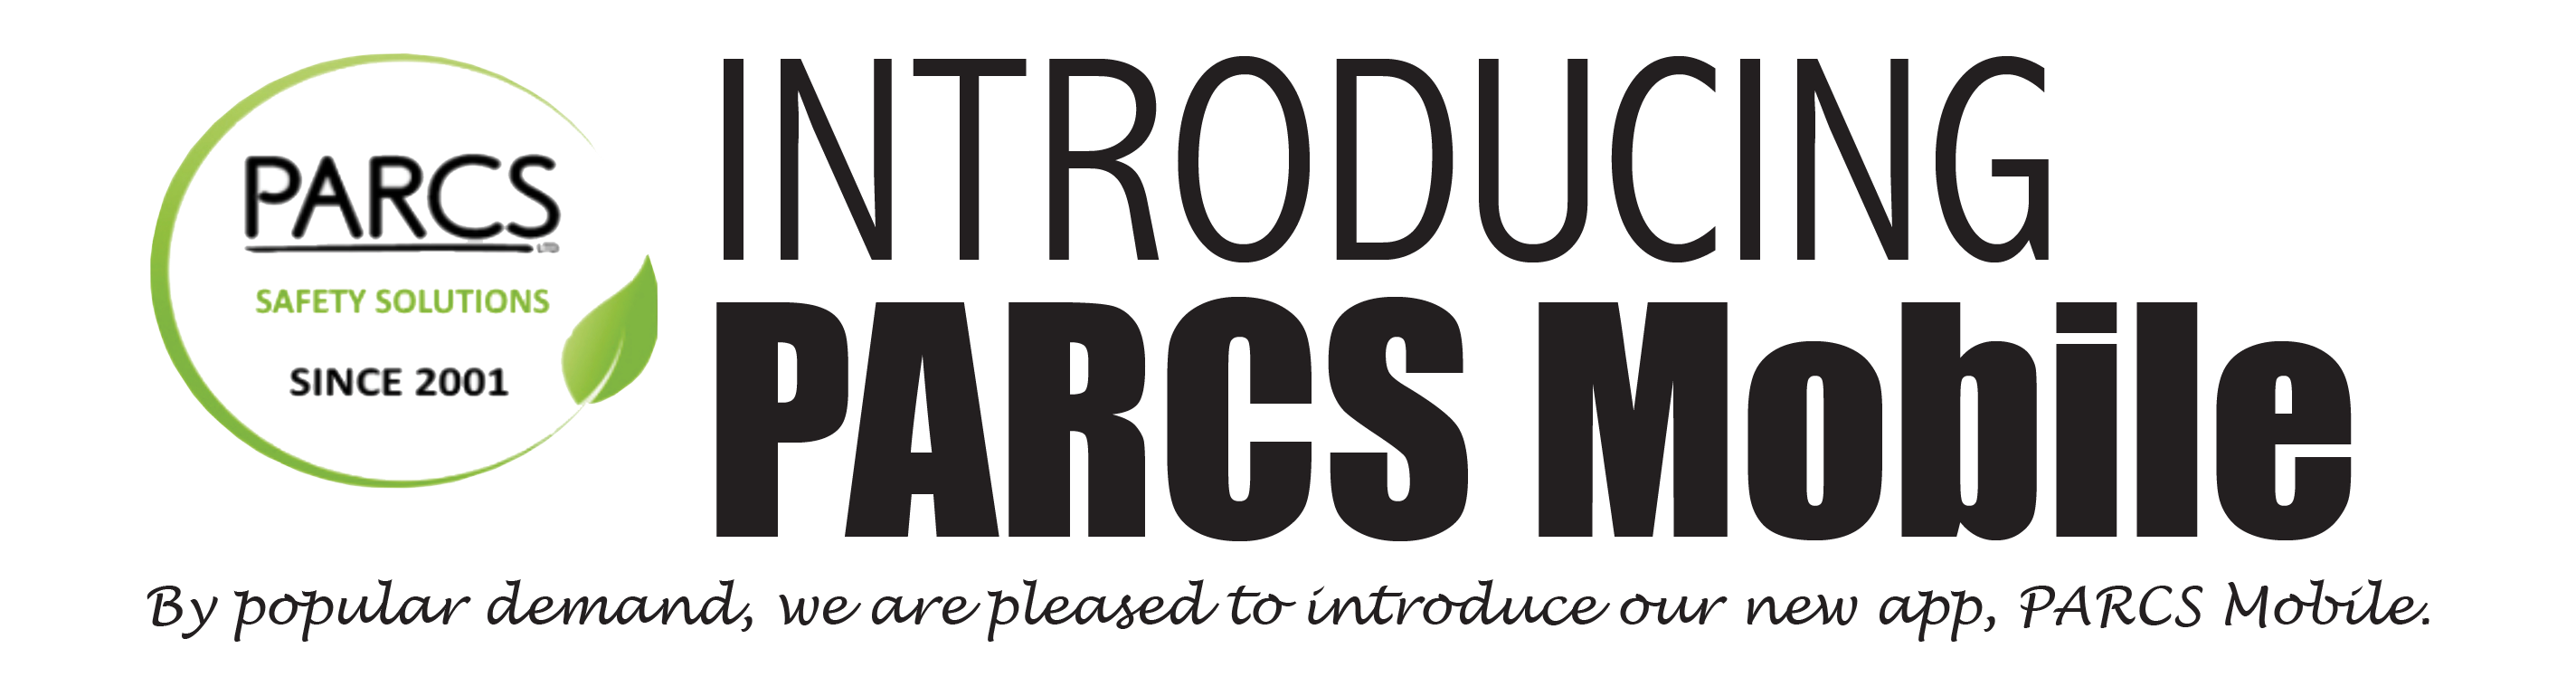 Introducing PARCS Mobile